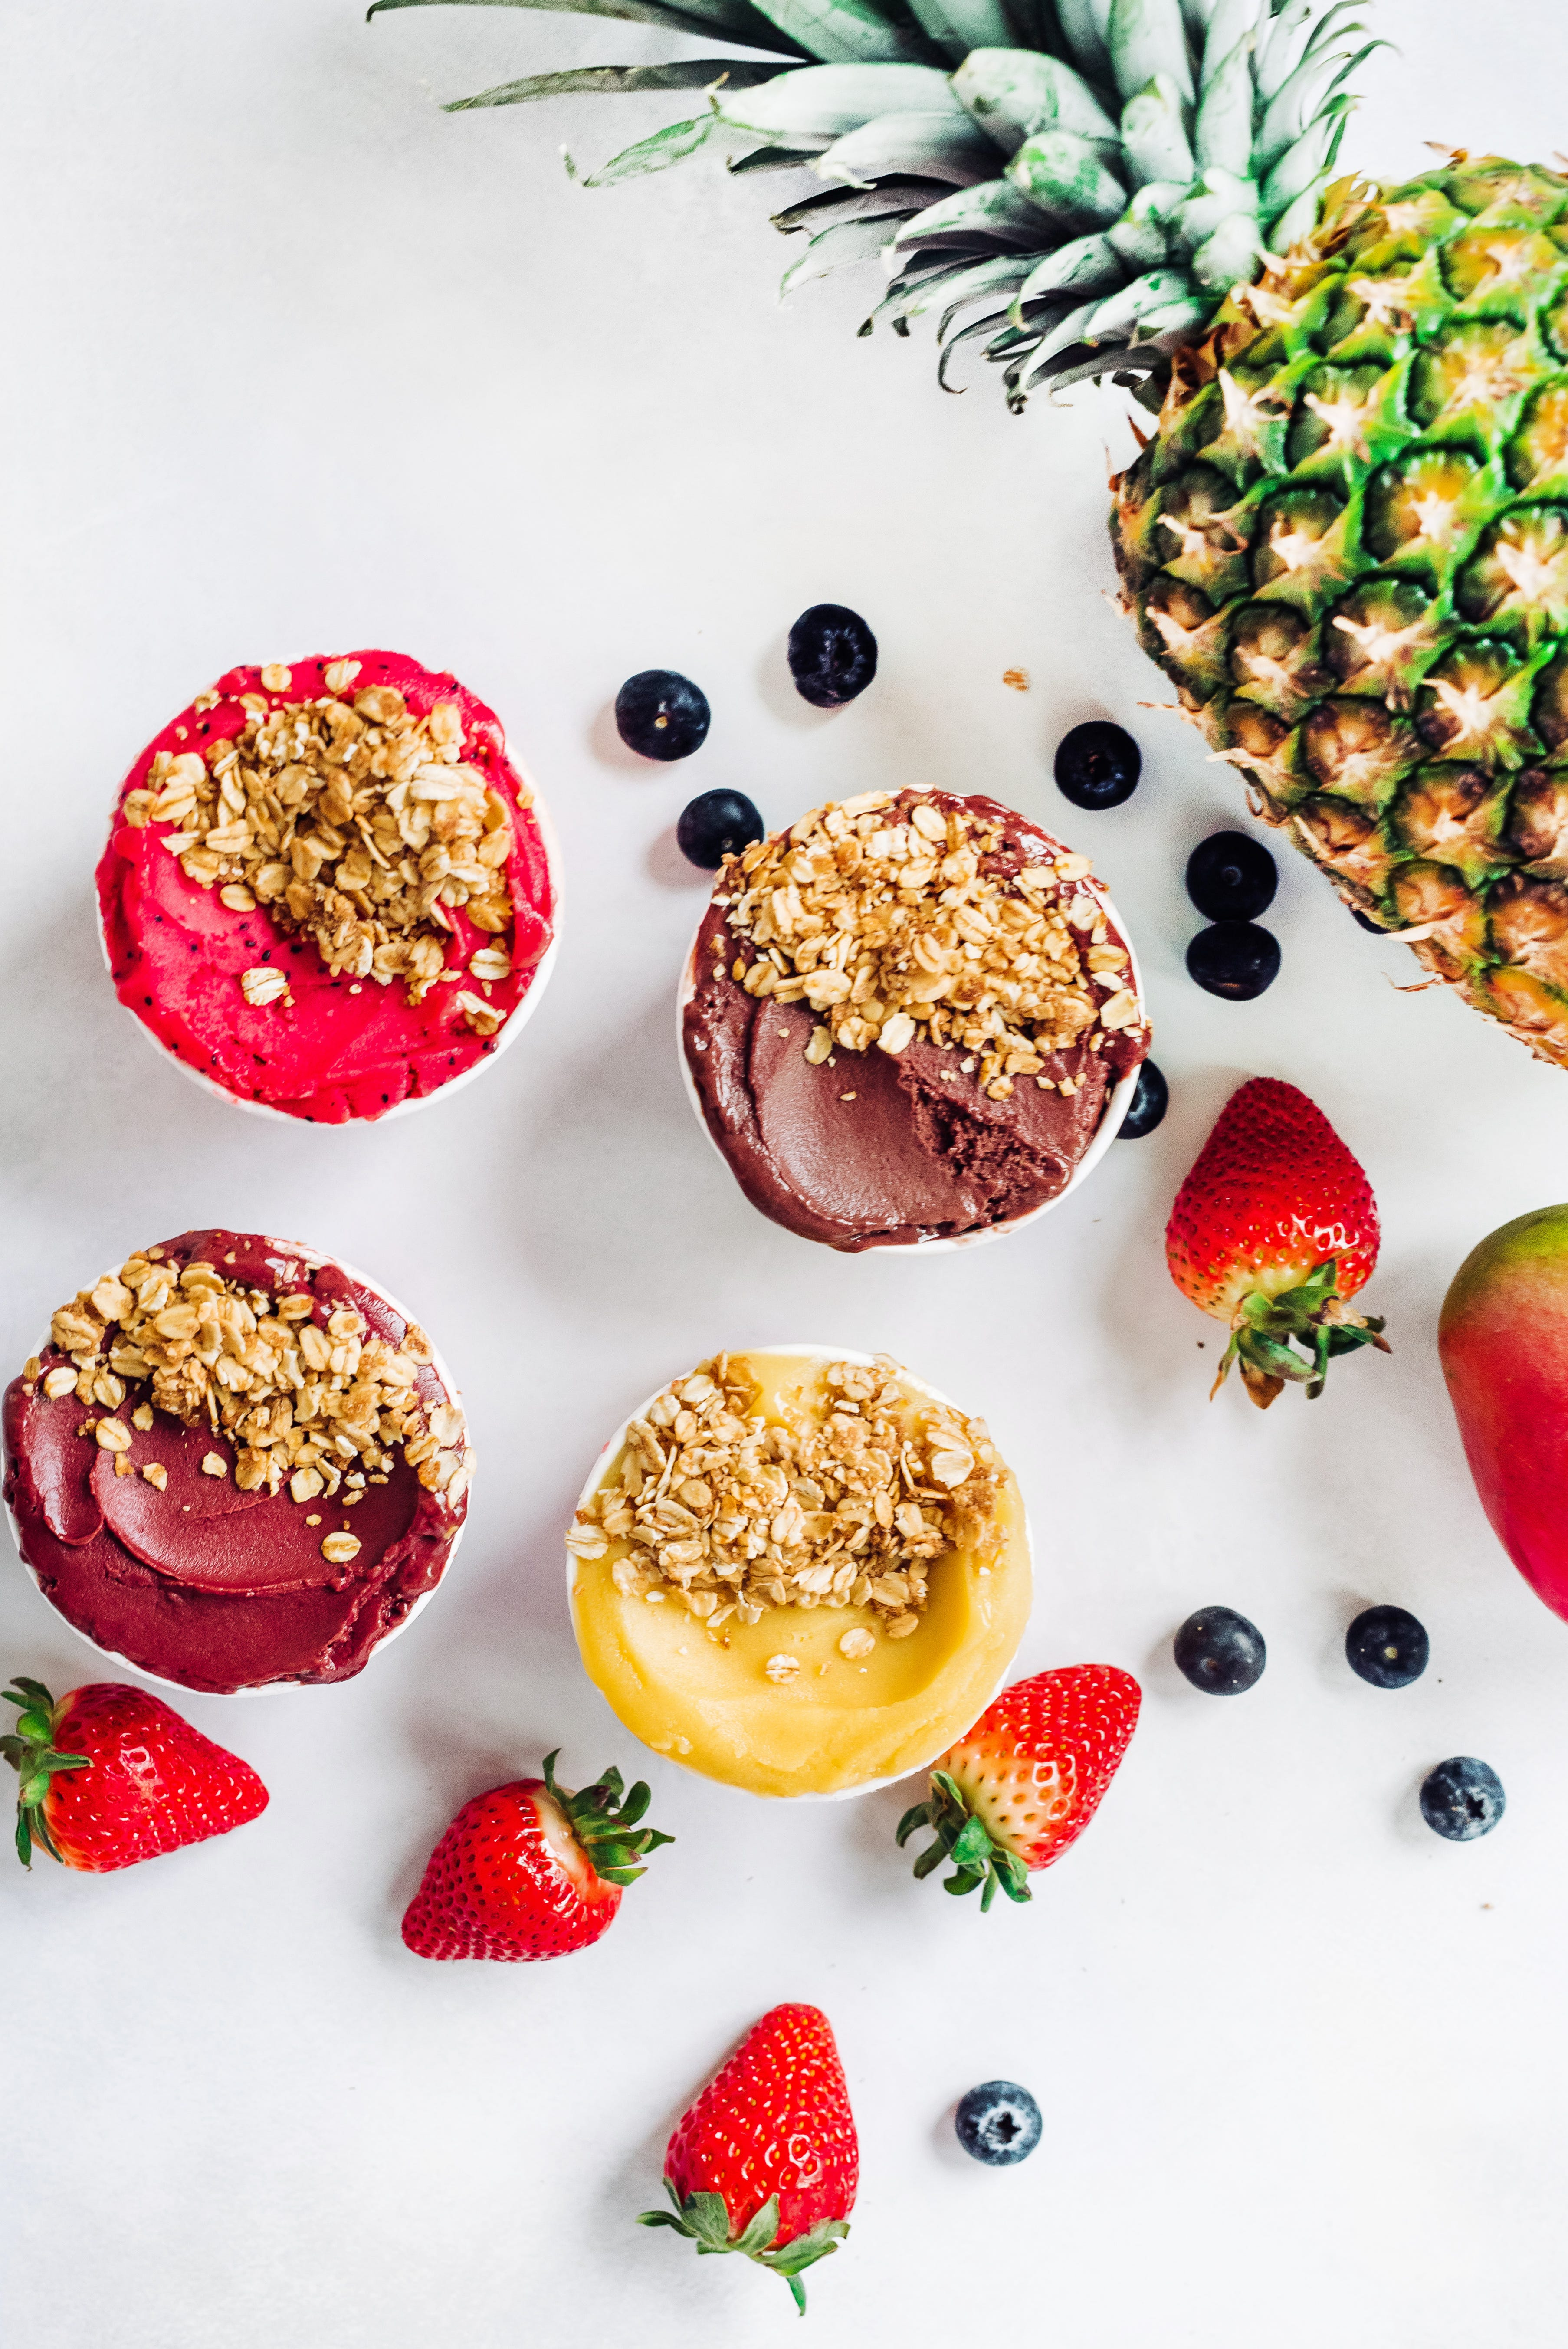 austin360.com - Addie Broyles, austin360 - Austin-based frozen smoothie bowl hits shelves at HEB now, Whole Foods soon